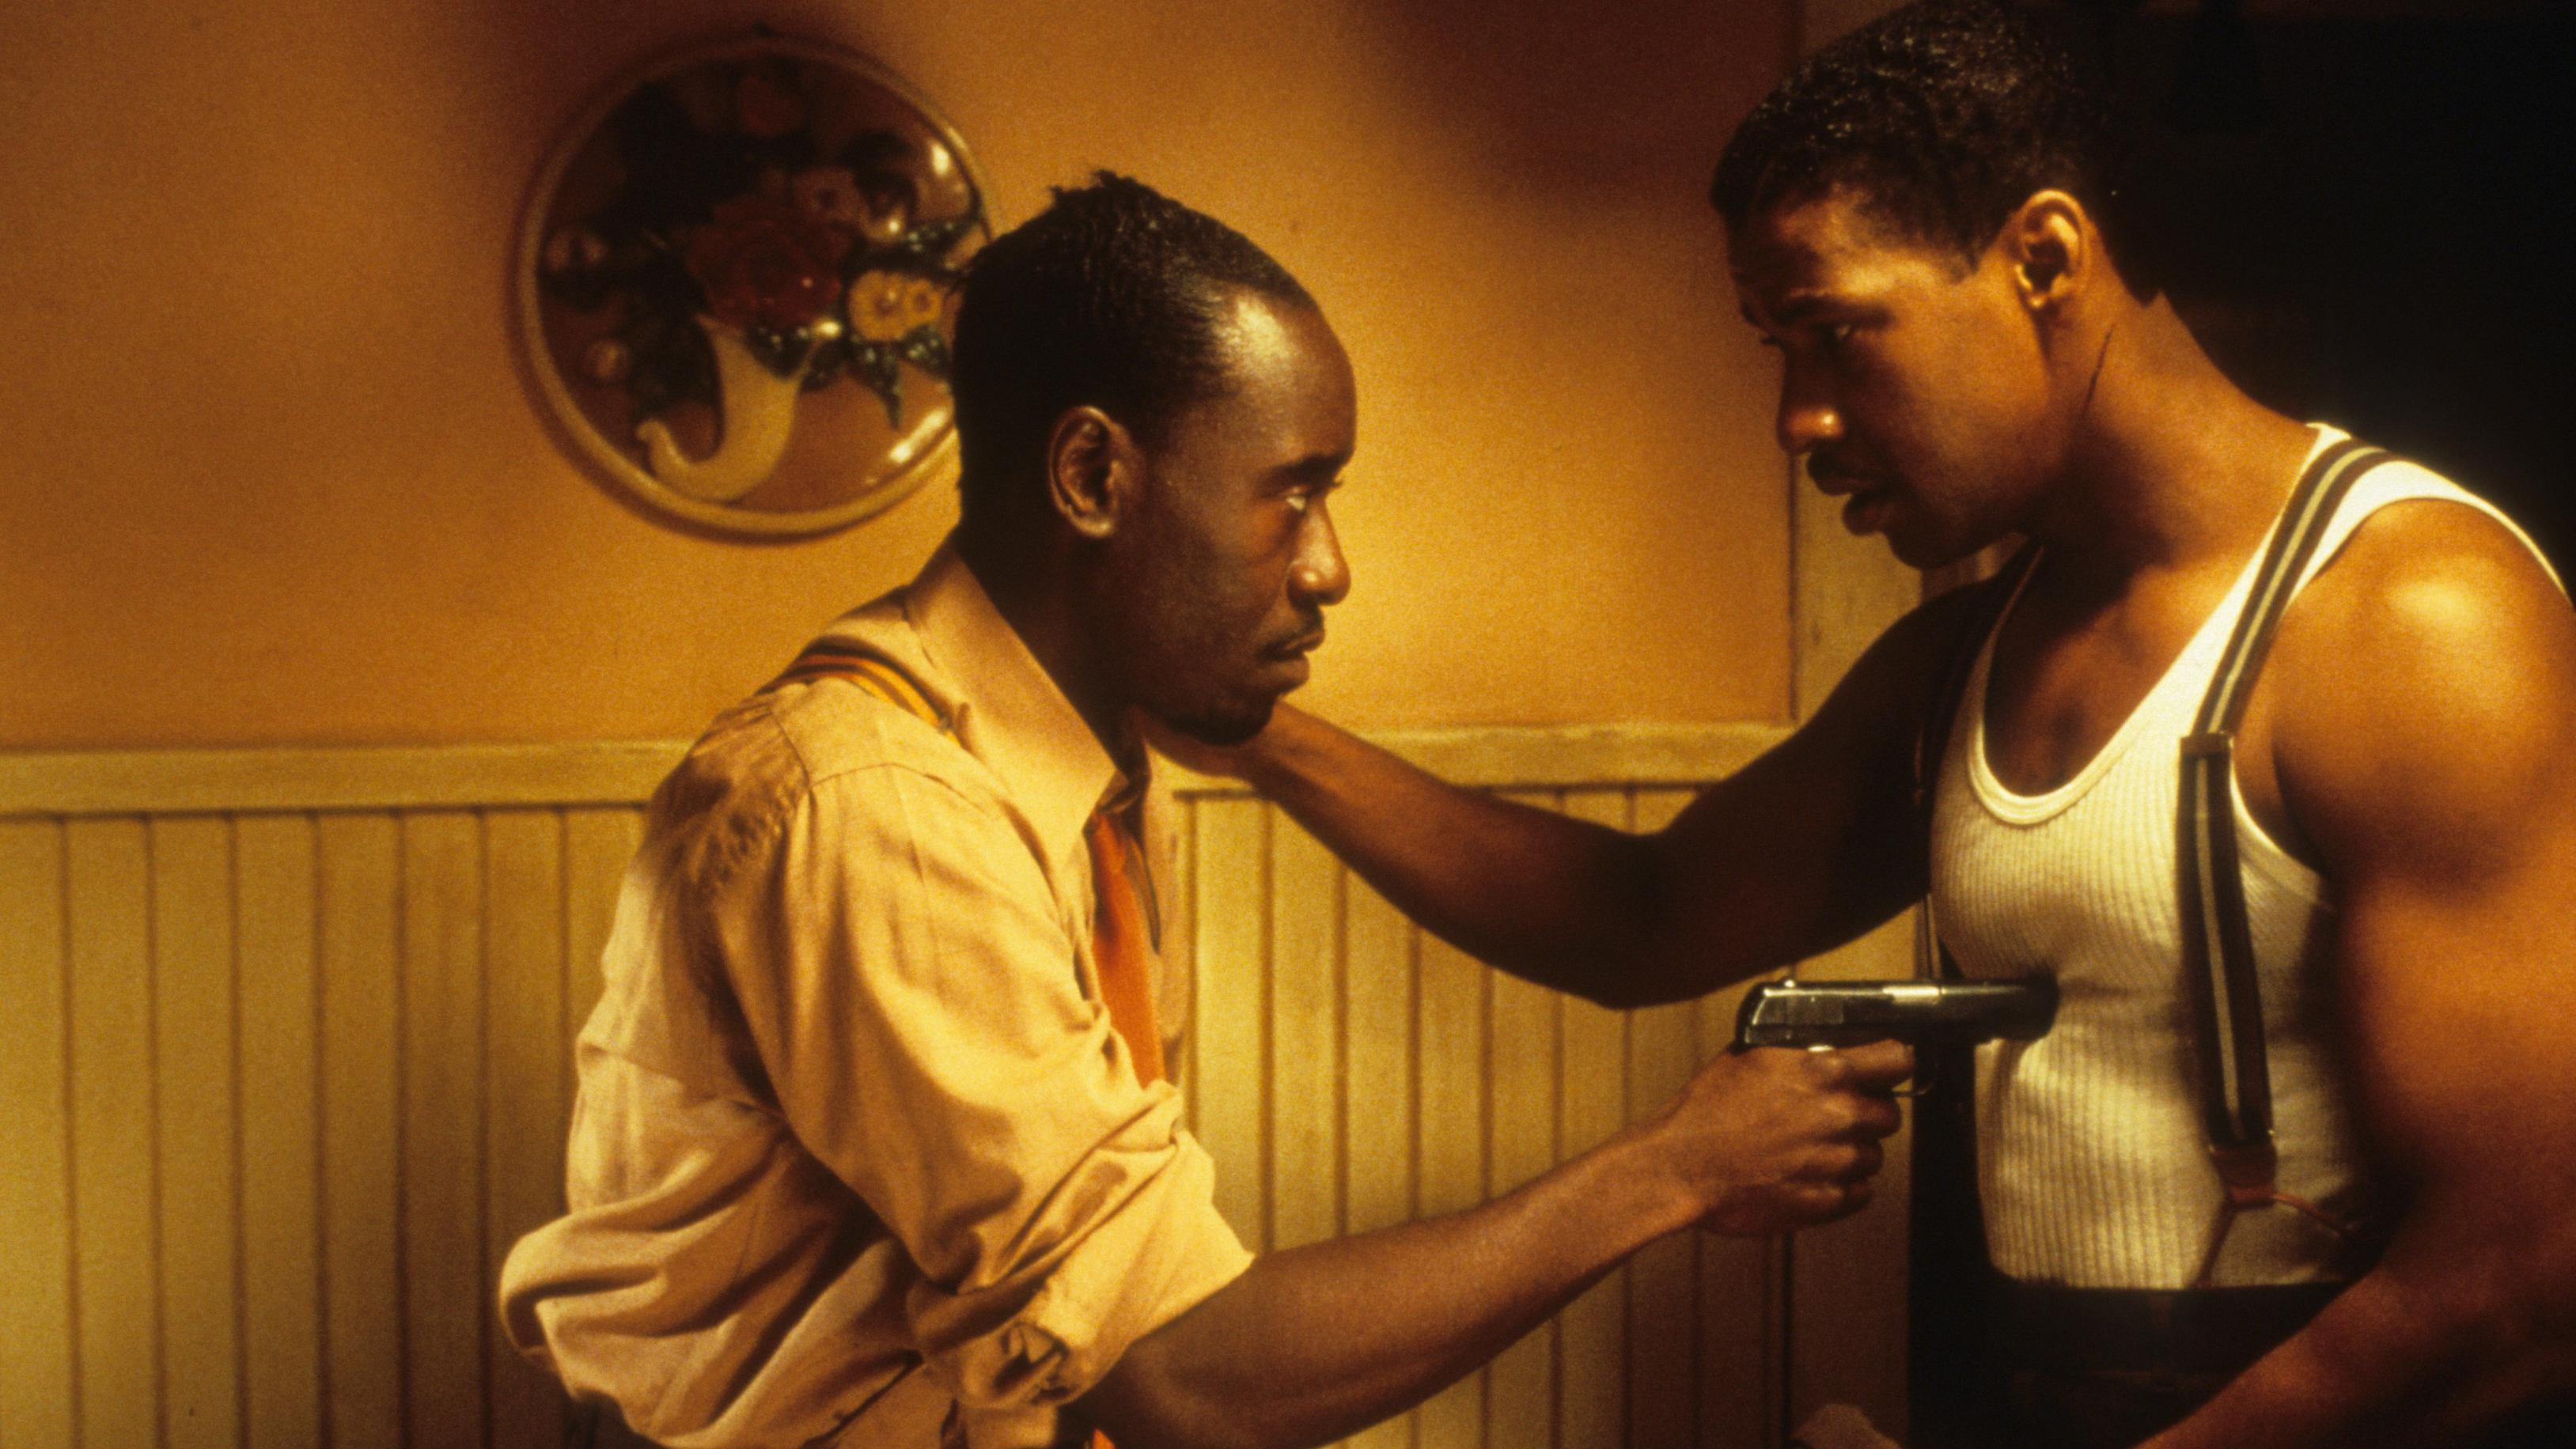 Don Cheadle And Denzel Washington In 'Devil in a Blue Dress'